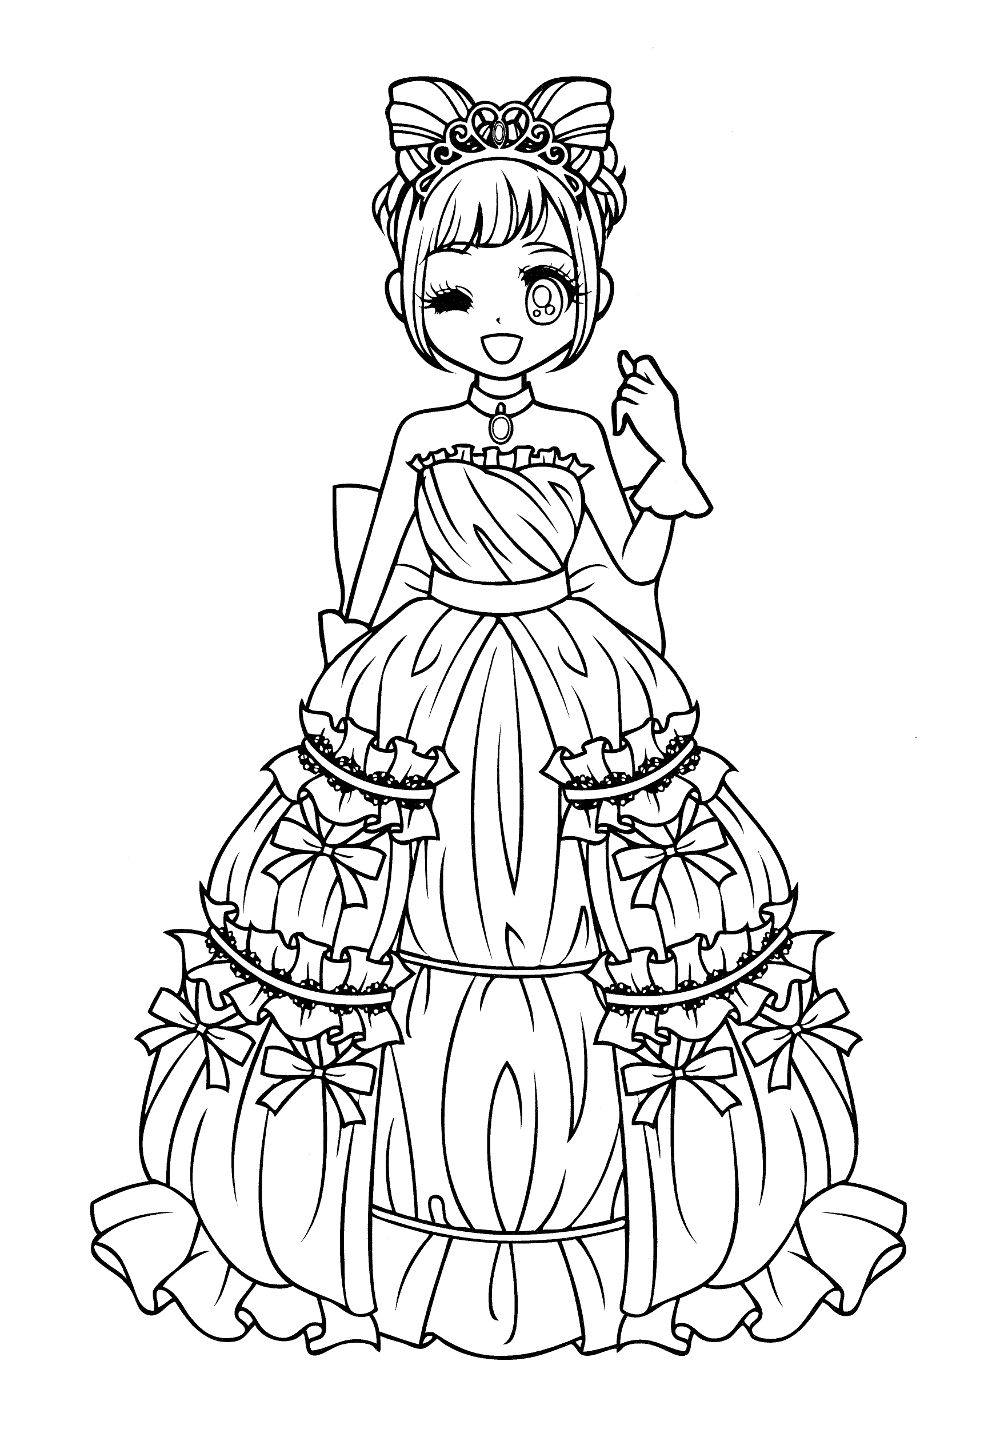 coloring sheets coloring pages coloring books chibi princess coloring pages queen for kids colouring pages vintage coloring books